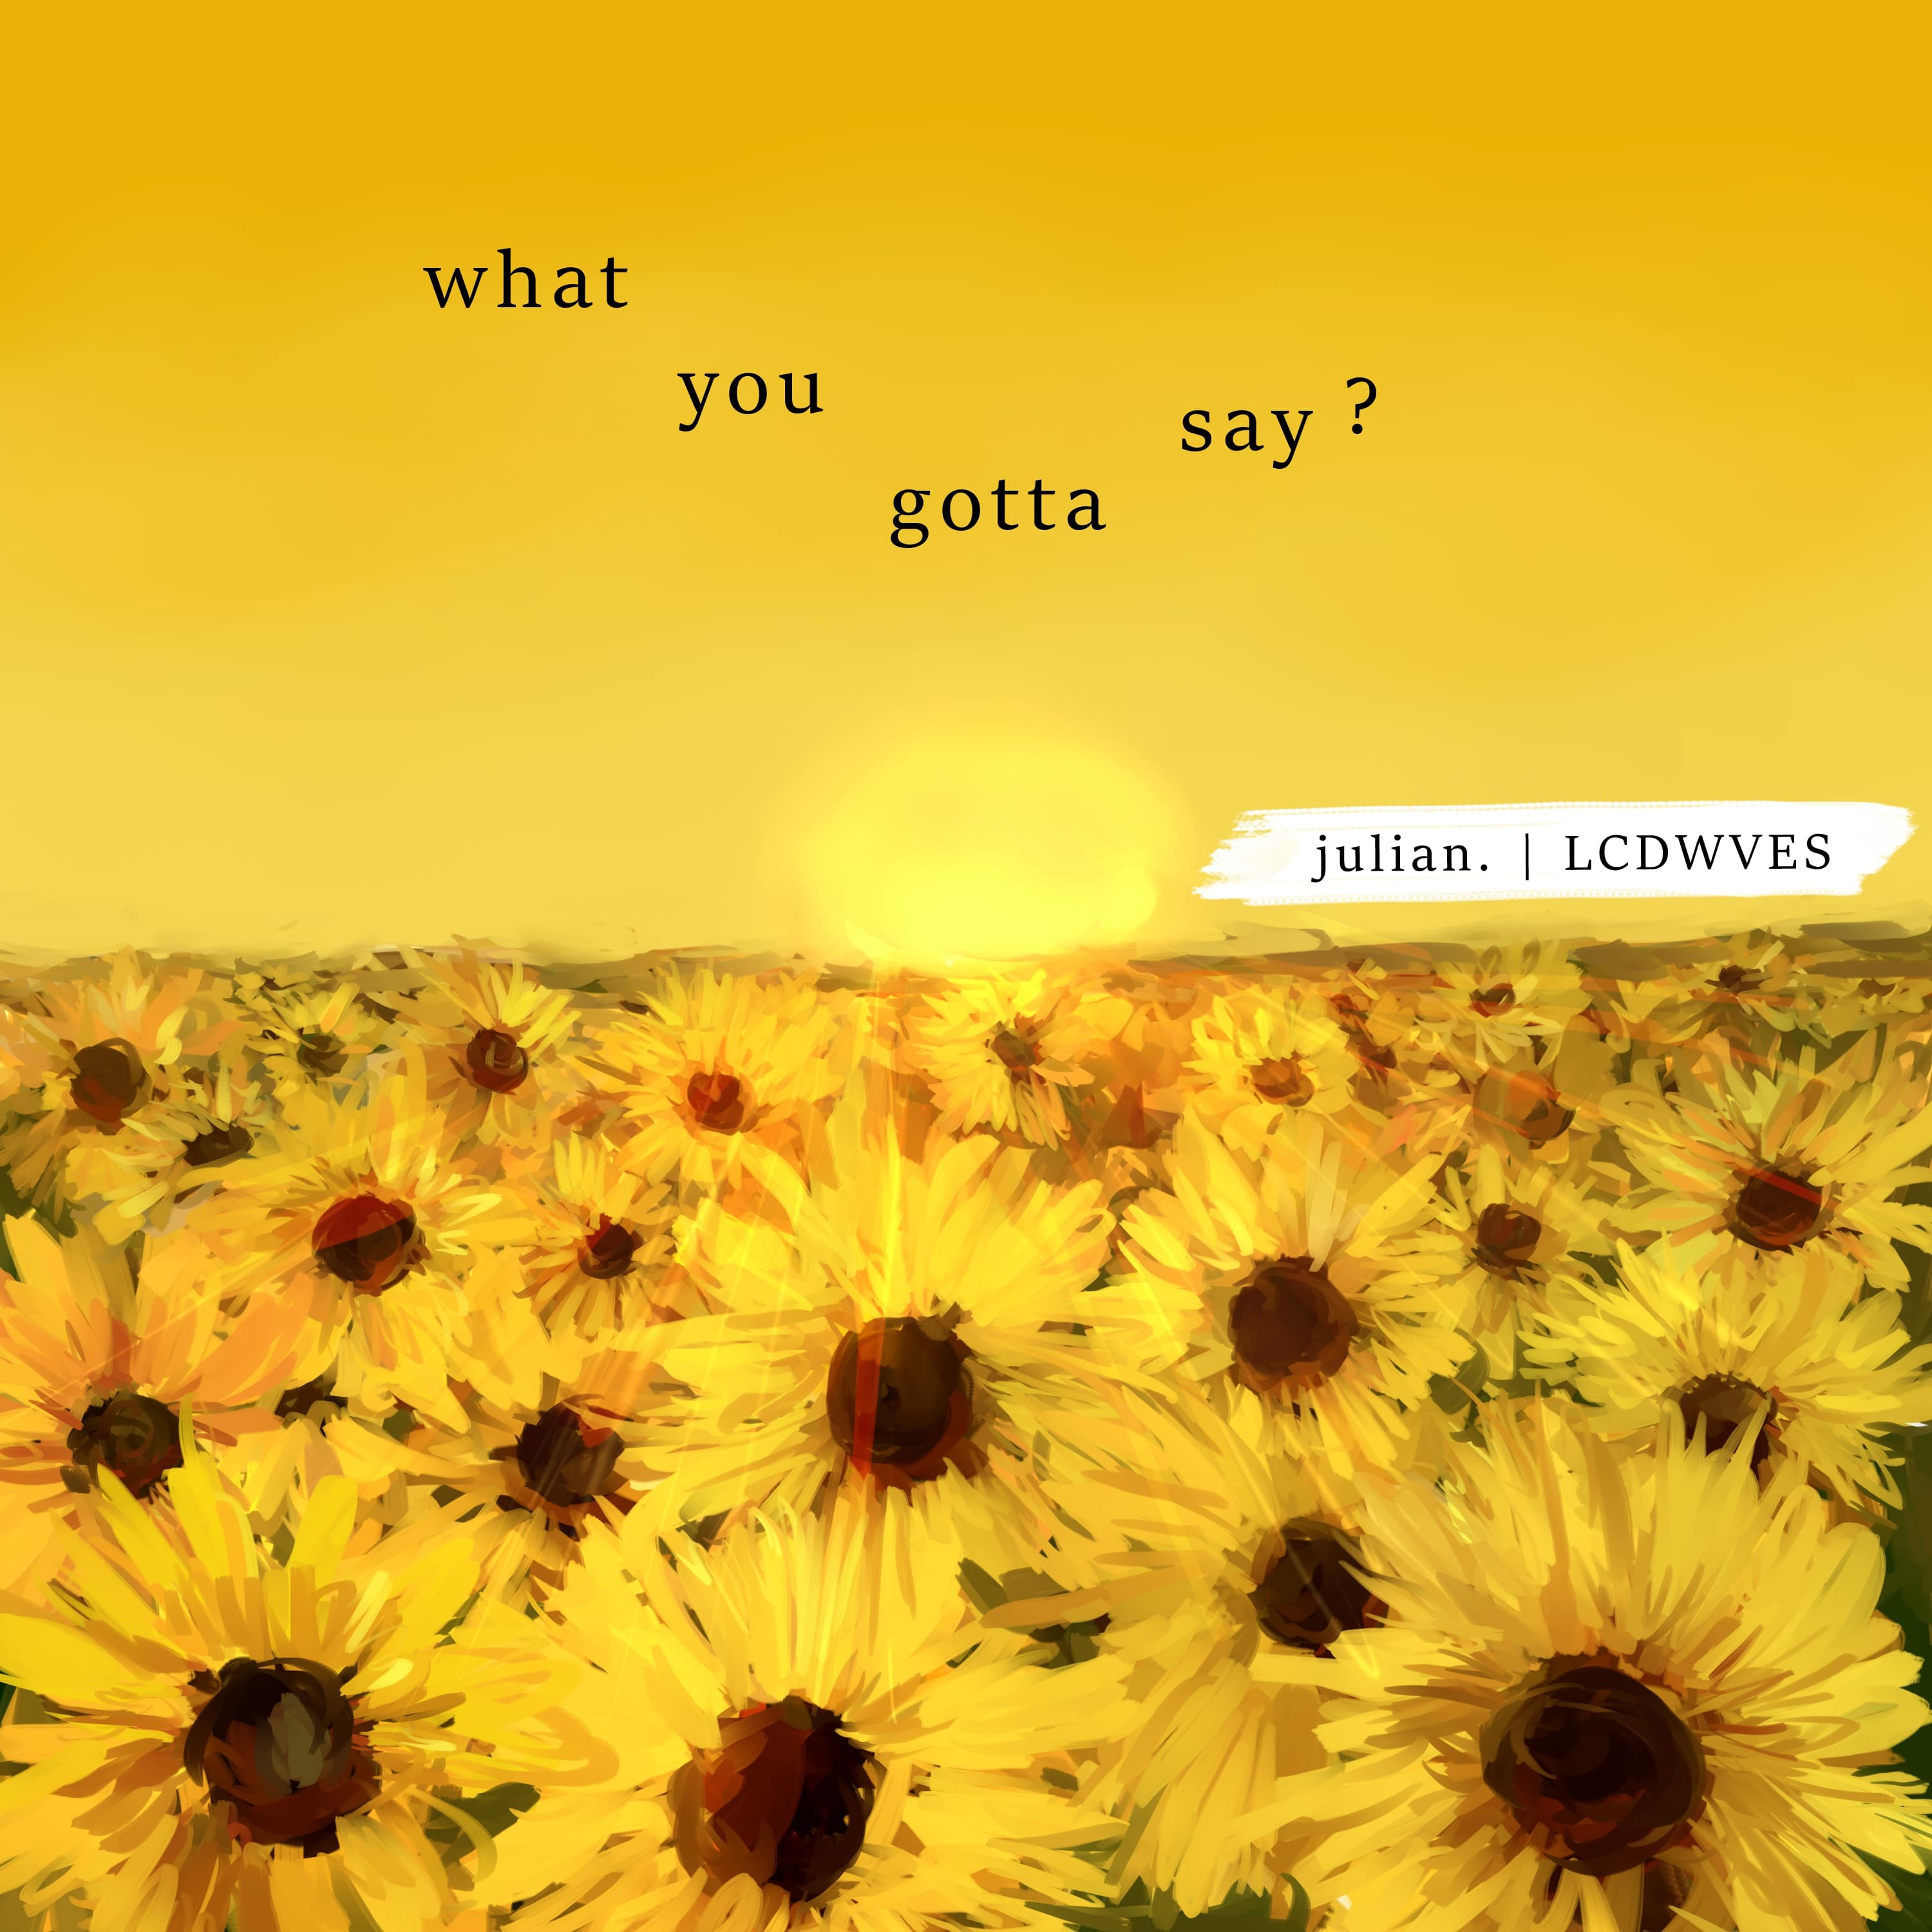 What you gotta say (latest release)